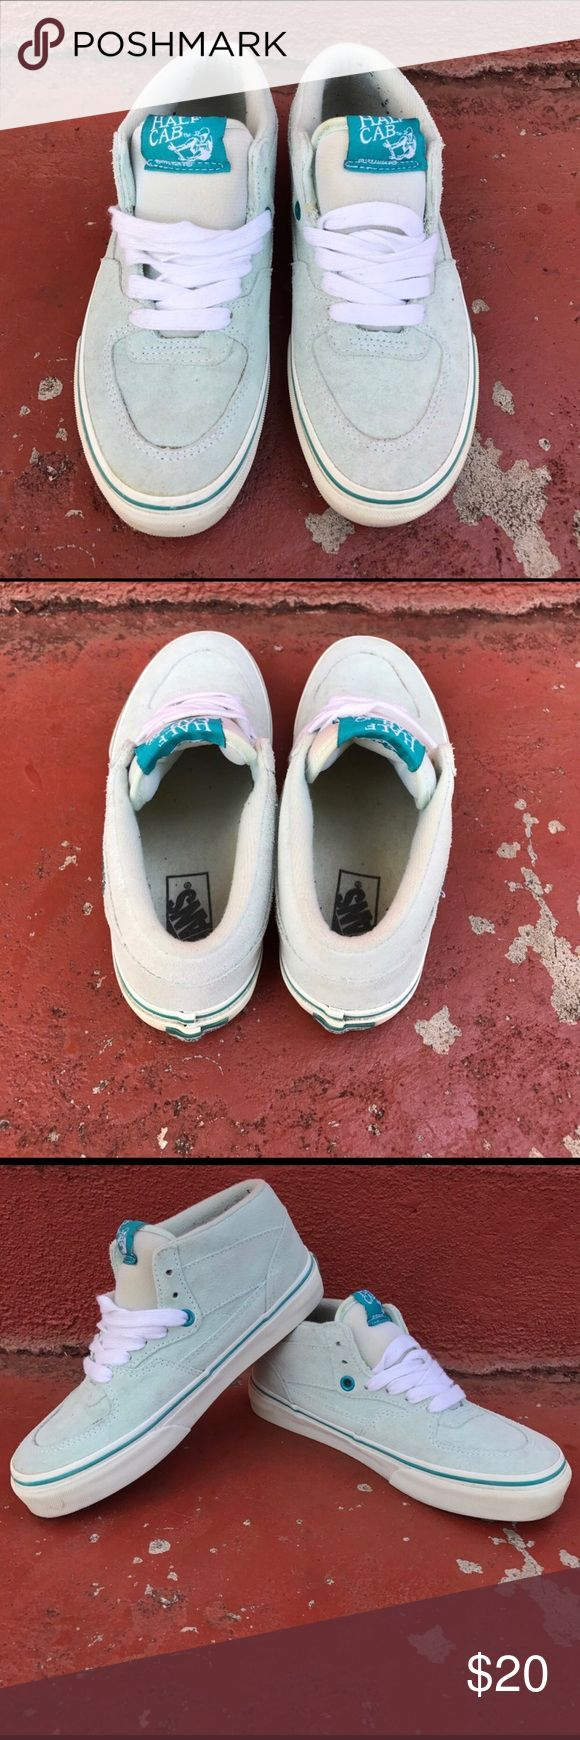 Vans Cab Shoes Worn several times/ In good condition/ Turquoise color/ Displays as youth but fits women's 5.5/ Price firm, pls no offers or trades Vans Shoes Athletic Shoes